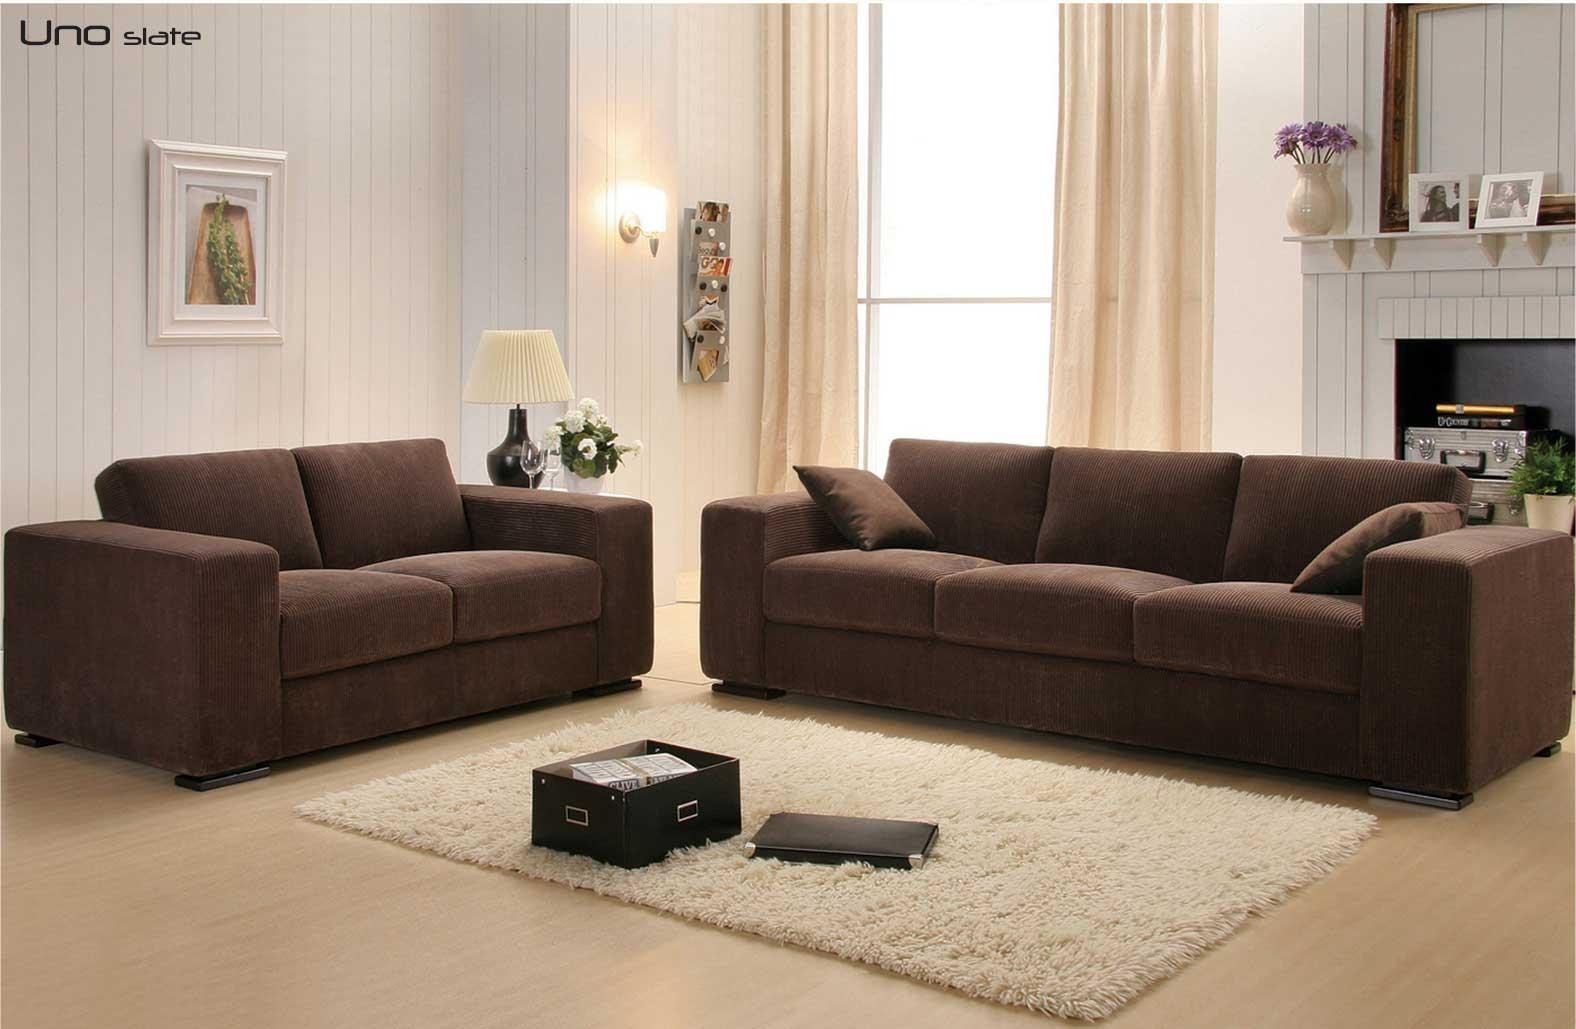 Slate Brown Corduroy Sofa Bed Star Modern Furniture